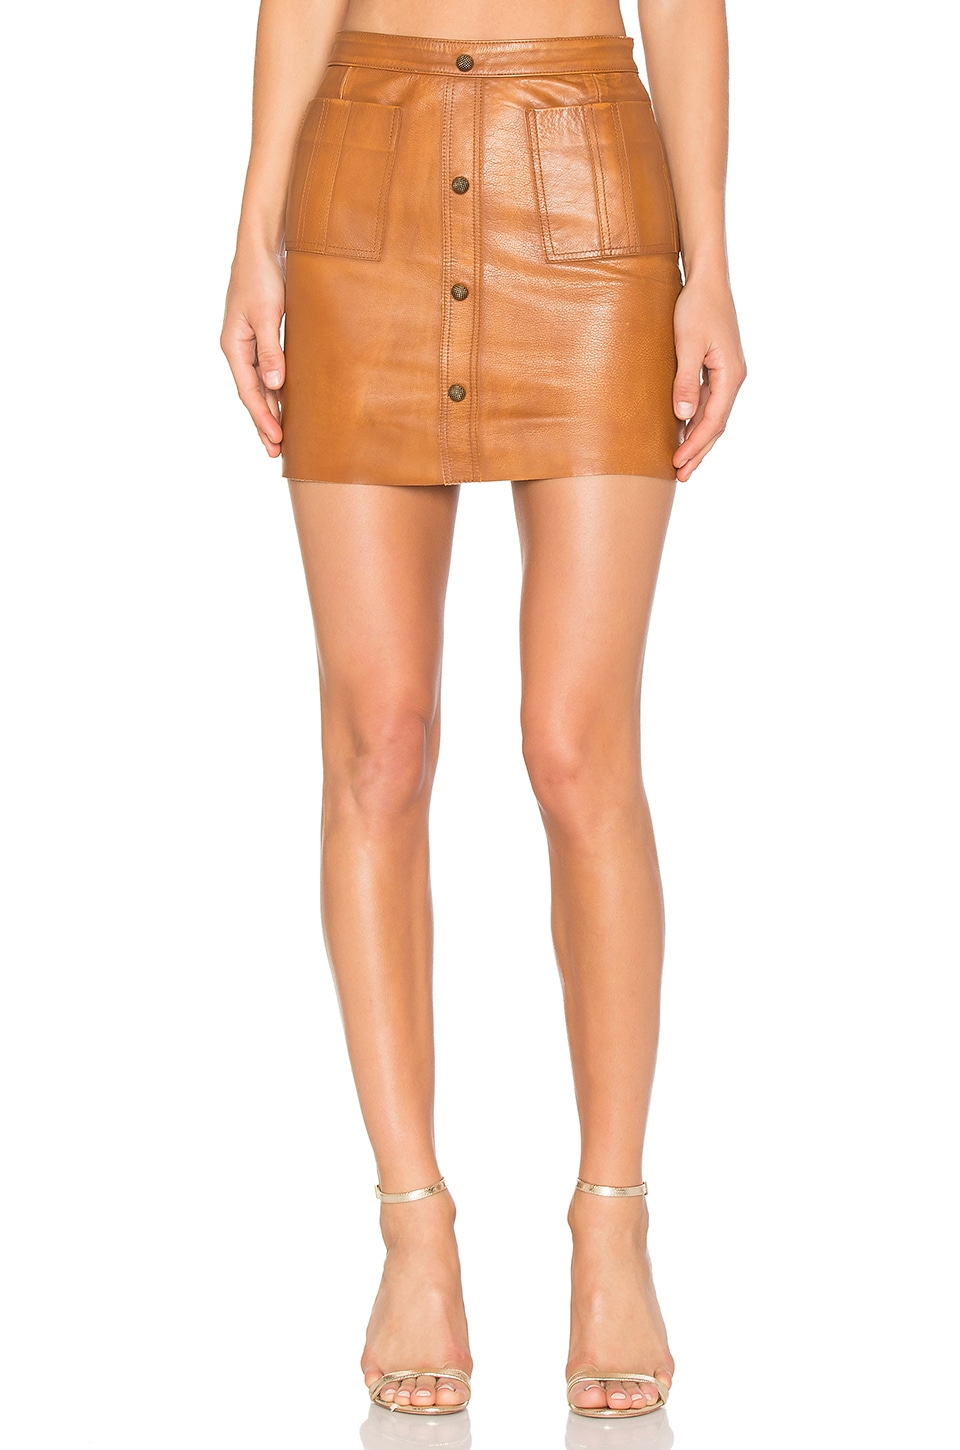 2d6c175d8 Shrimpton Leather Mini Skirt. Shrimpton Leather Mini Skirt. Aje